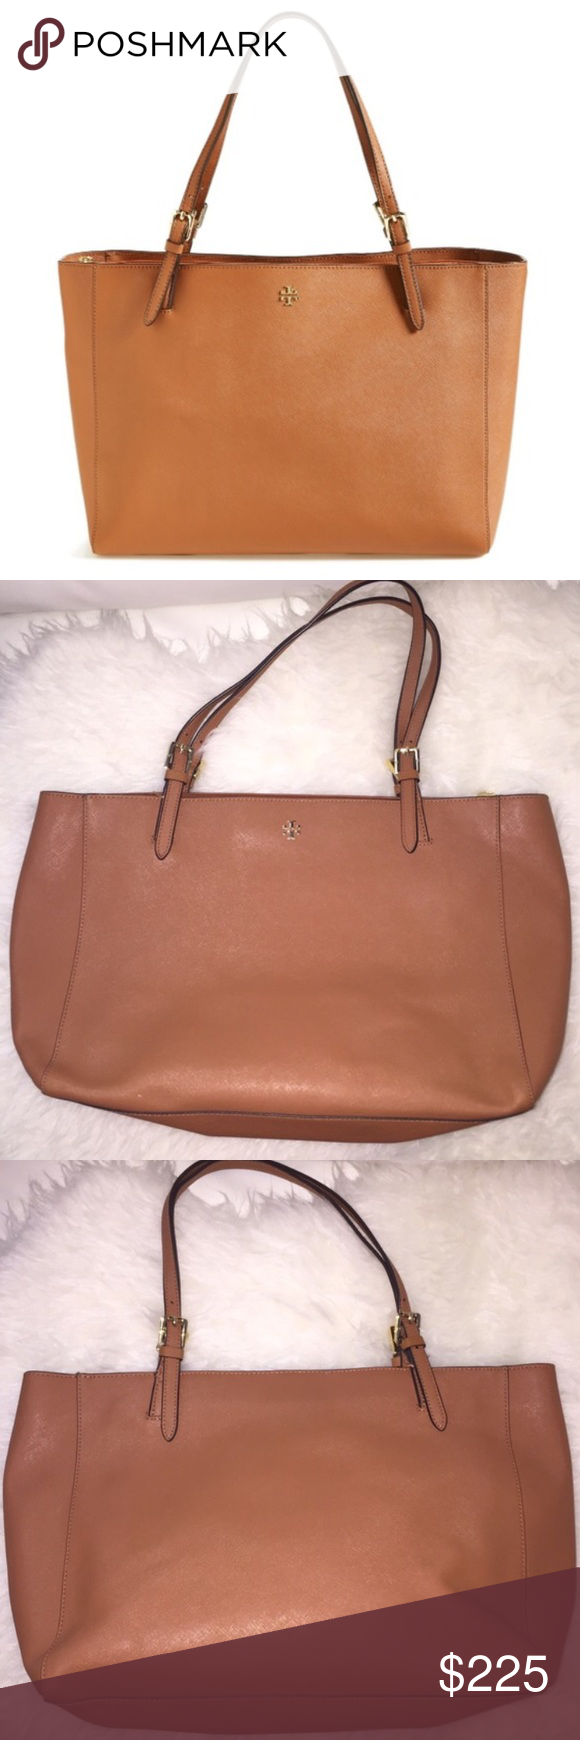 Tory Burch Large York Tote Authentic Tory Burch Large York Tote •  Great condition, Amazing deal!!   I'll only consider offers made with the offer button. No trades or low ball offers. My items are already extremely discounted and sell very fast. So, if you see something you like... make an offer! ❤️  Thanks for looking around my closet! I am always adding new items!   BUNDLE & SAVE 10%!  Top 10% rated seller// suggested user✨ Tory Burch Bags Totes